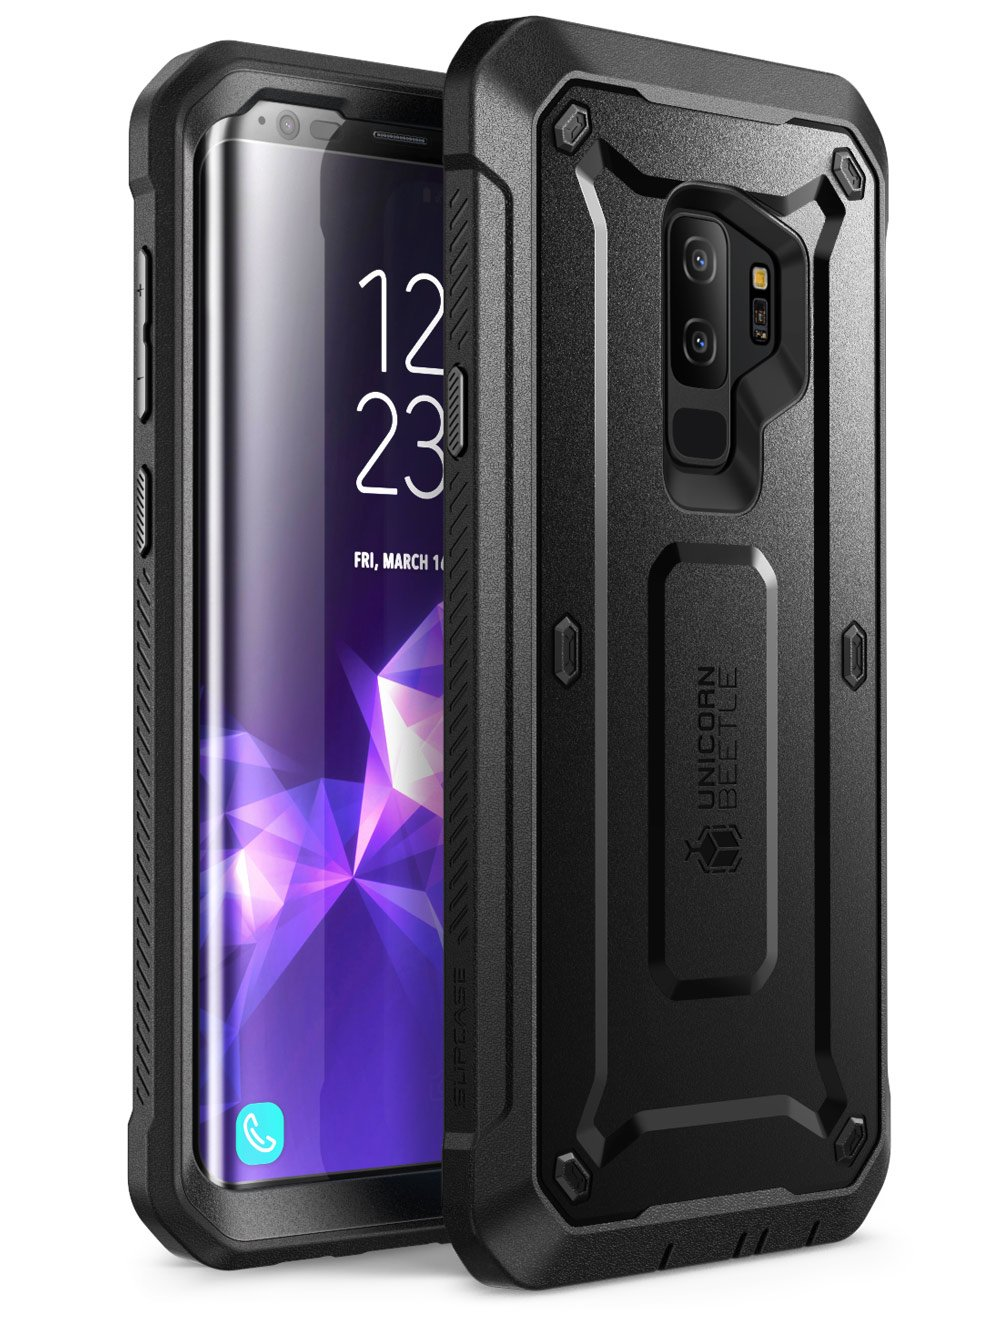 SUPCASE Unicorn Beetle Pro Series Case Designed for Samsung Galaxy S9+ Plus, with Built-In Screen Protector Full-body Rugged Holster Case for Galaxy S9+ Plus (2018 Release) (Black) by SupCase